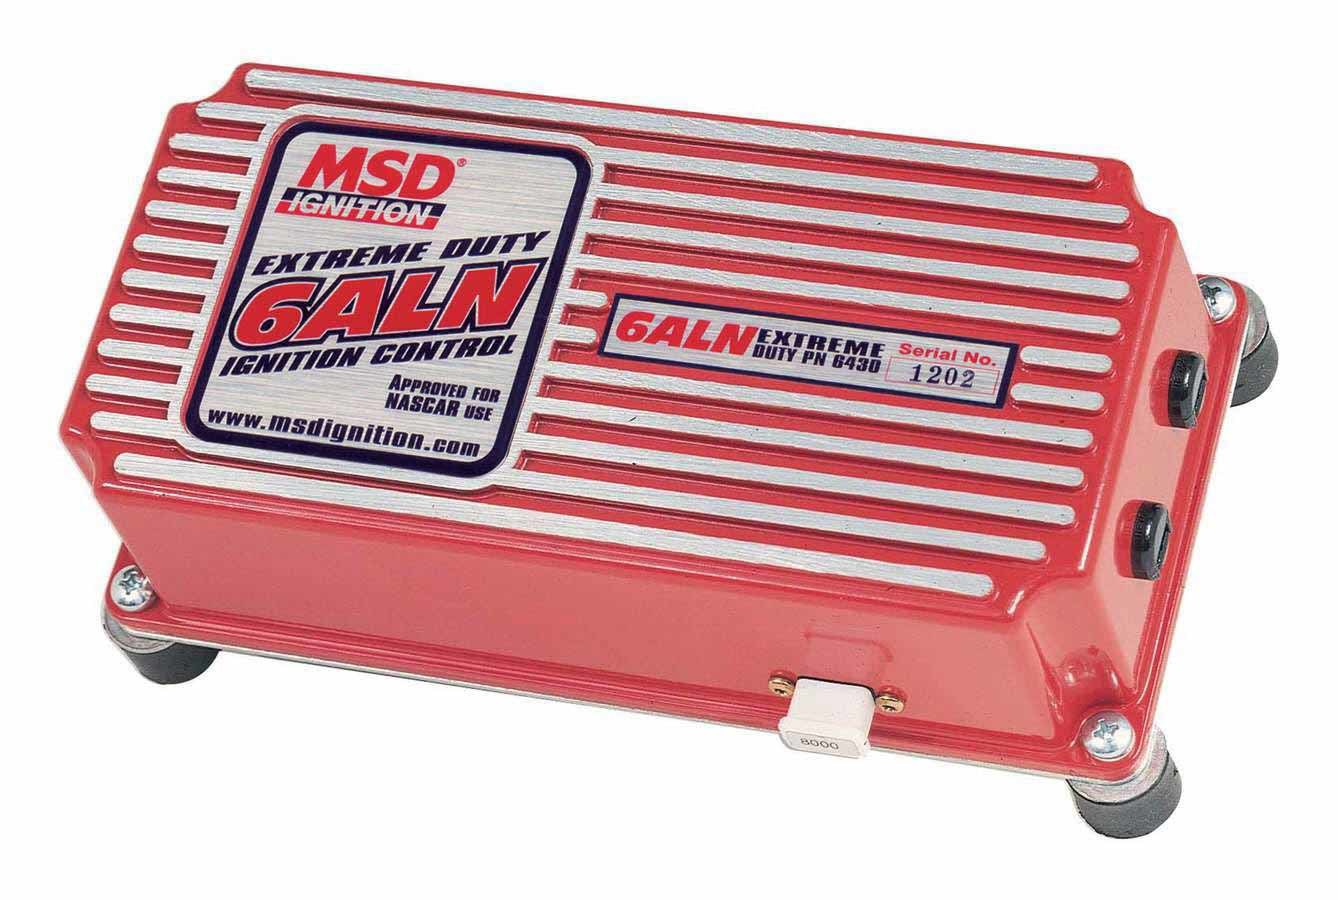 Msd Ignition MSD 6ALN Ignition Box Nascar Approved